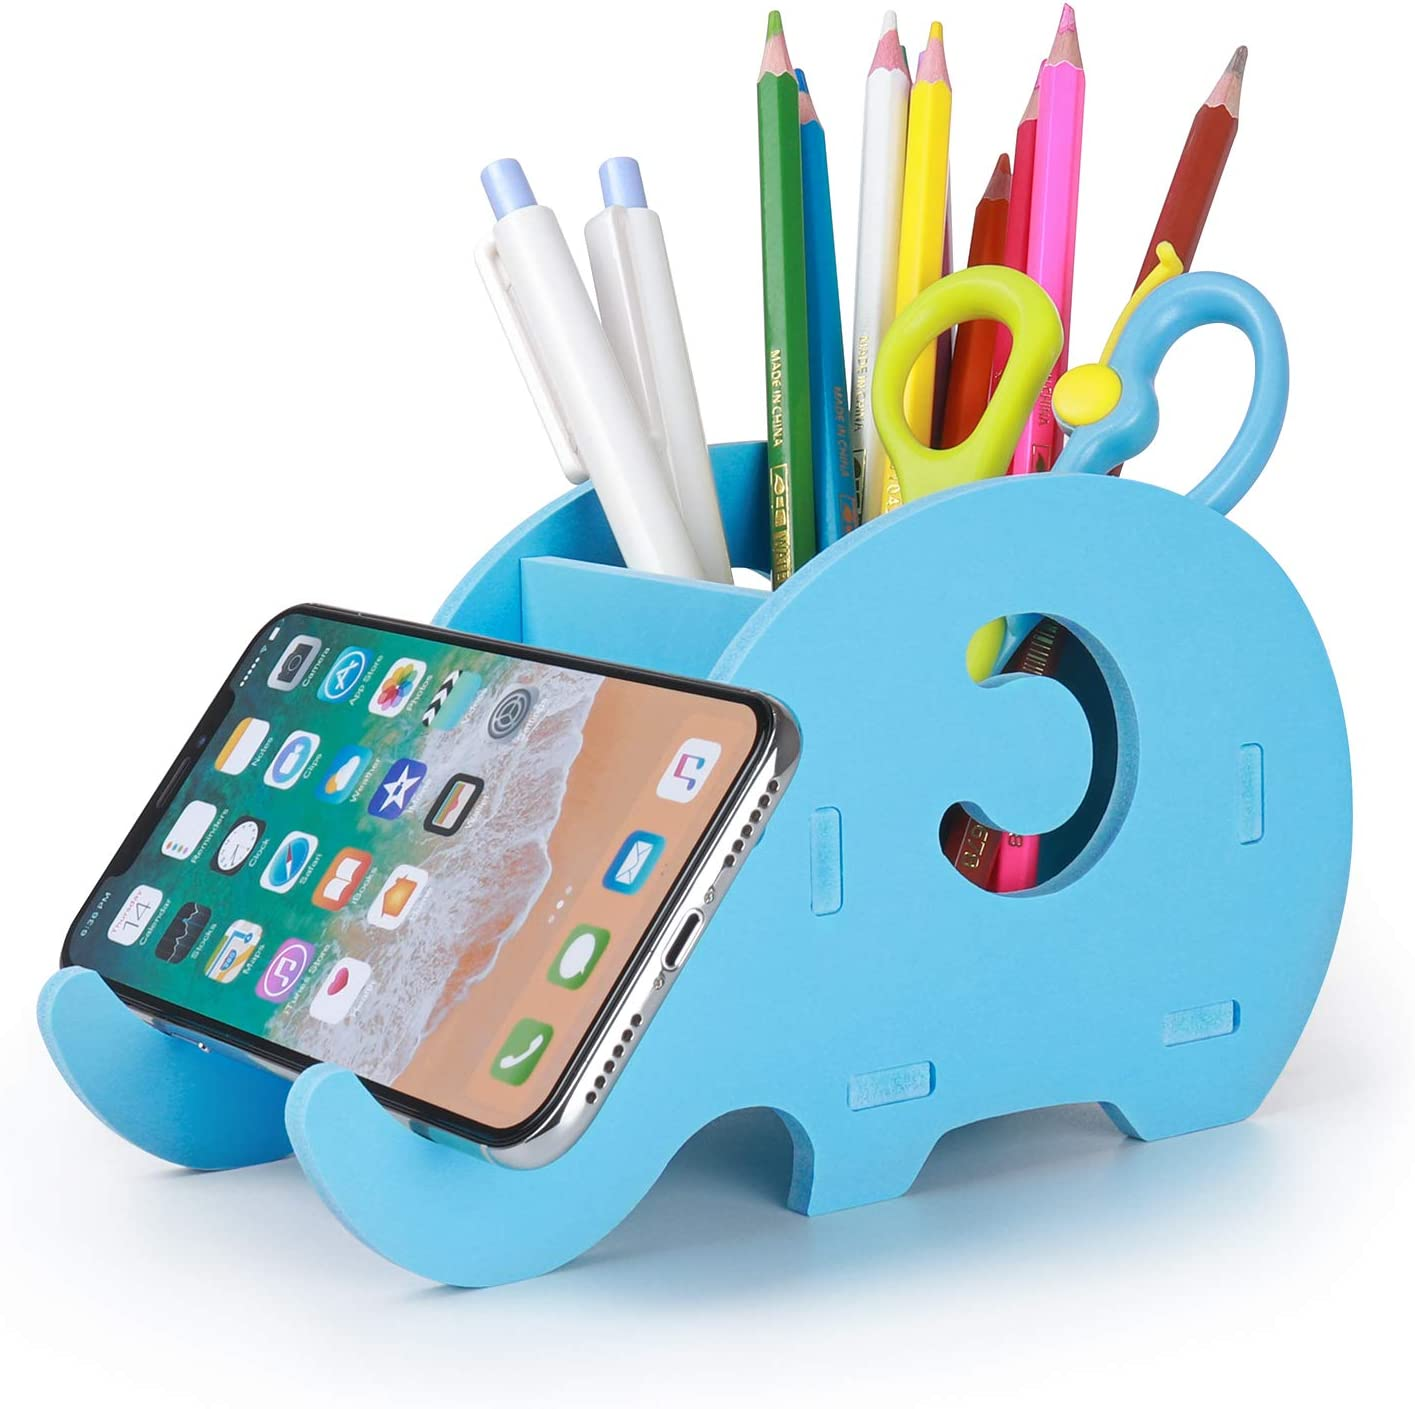 Desk Supplies Organizer, Mokani Cute Elephant Pencil Holder Multifunctional Office Accessories Desk Decoration with Cell Phone Stand Office Supplies Desk Decor Organizer Christmas Gift, Blue